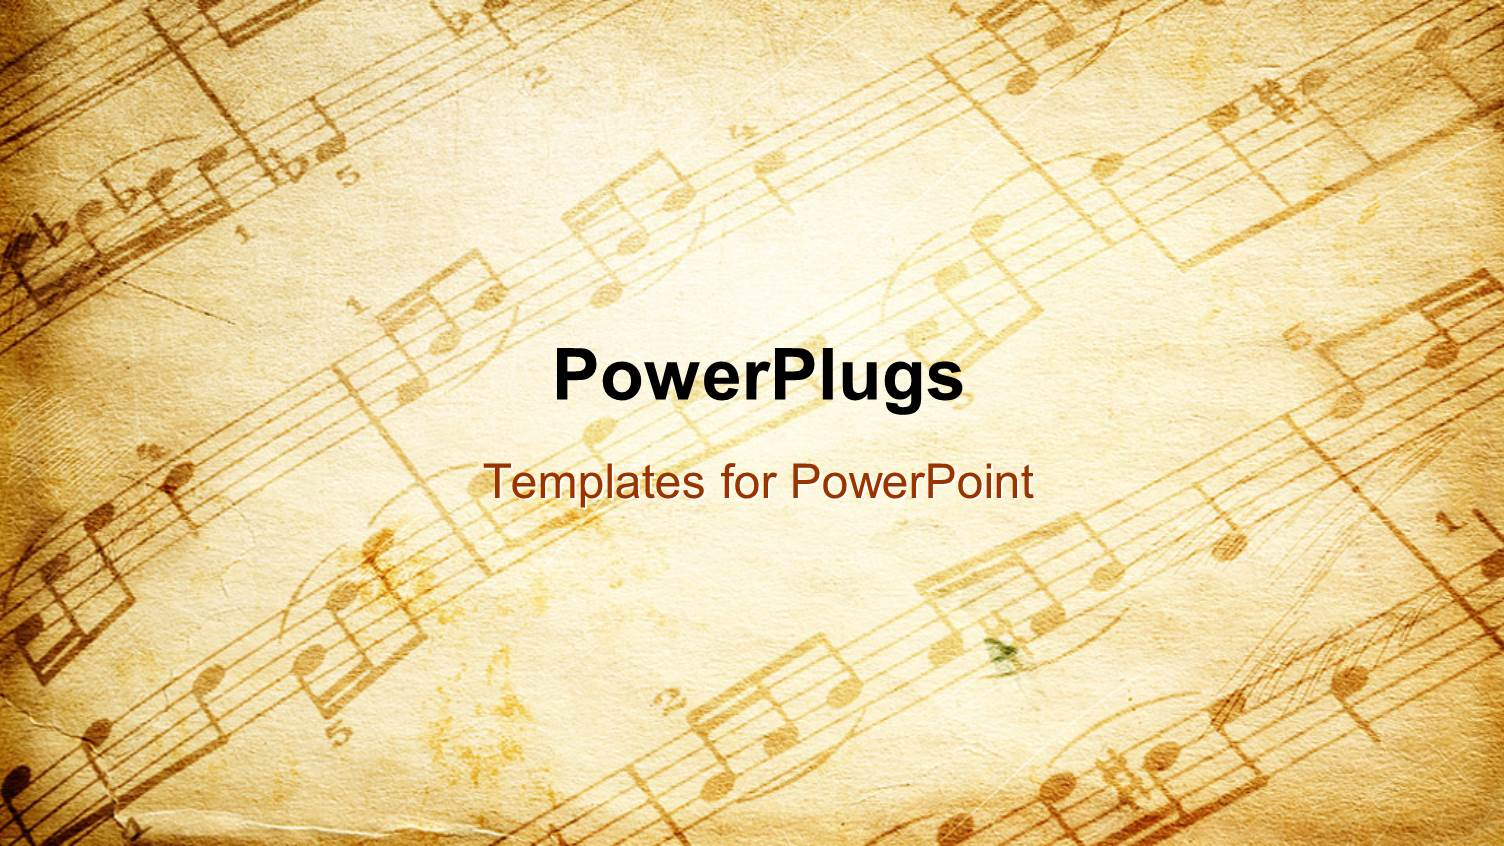 powerpoint template: vintage paper background depicting music, Modern powerpoint